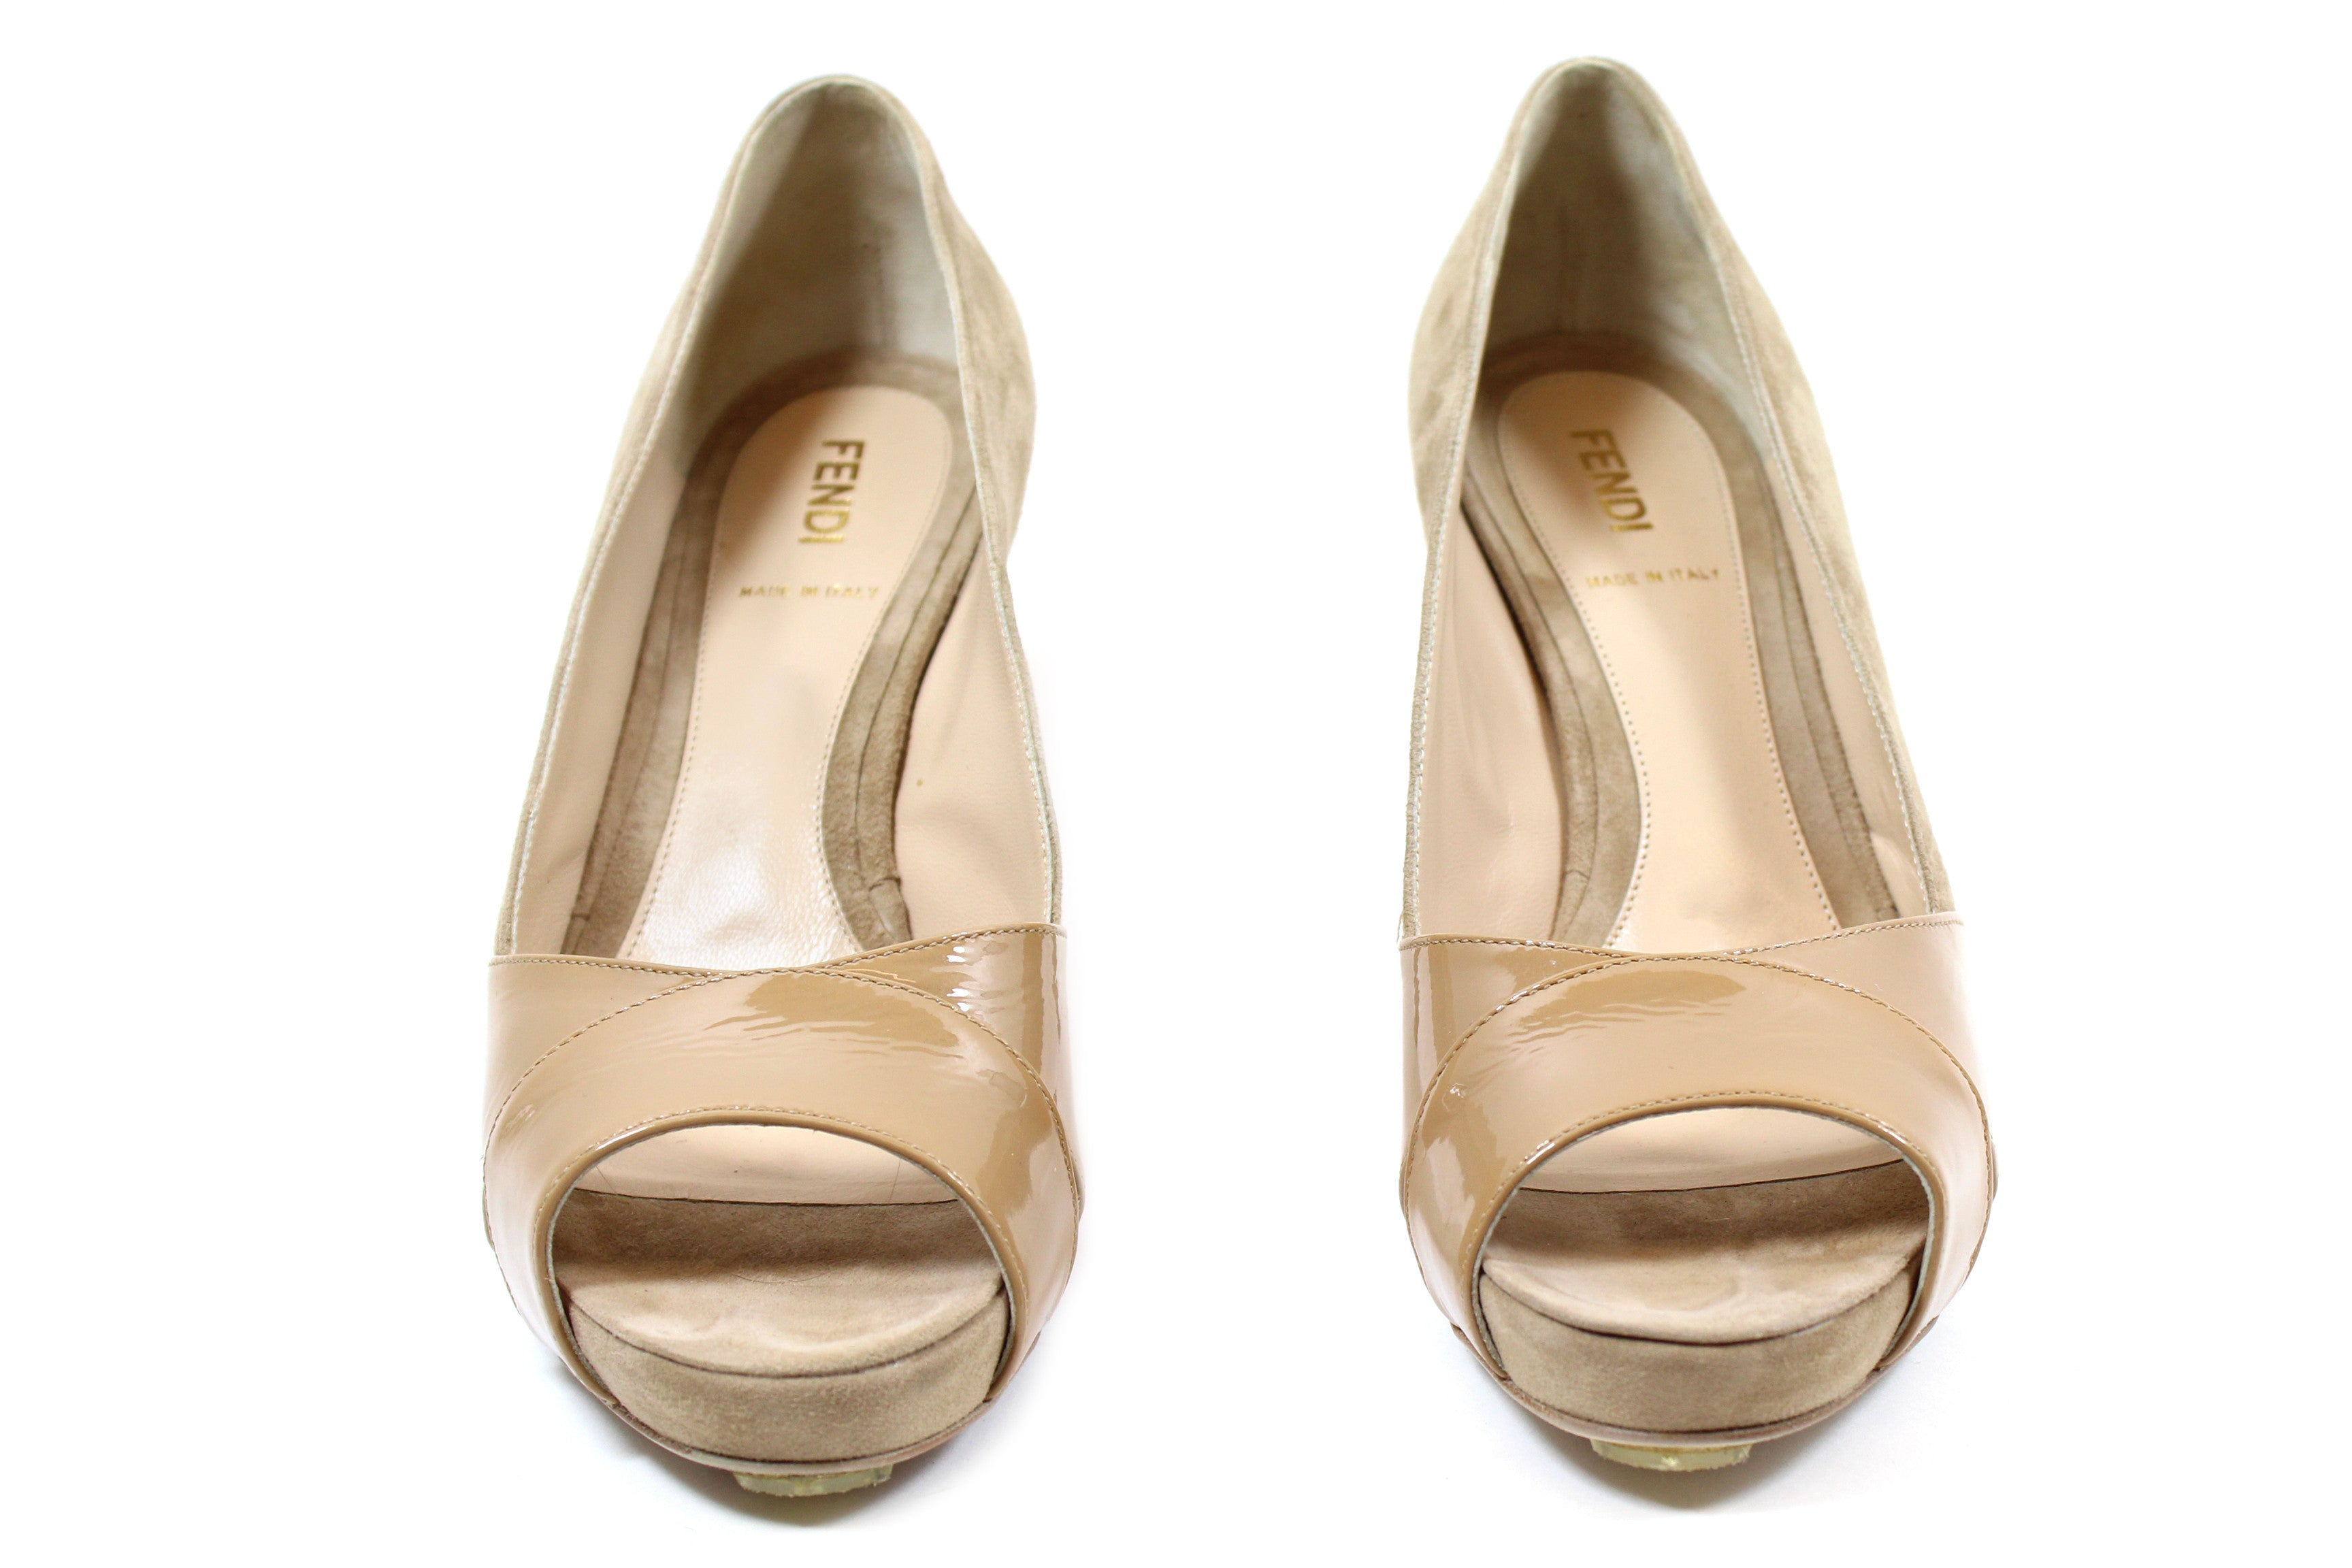 Fendi Beige Suede and Patent Leather Pumps (Size 37.5)